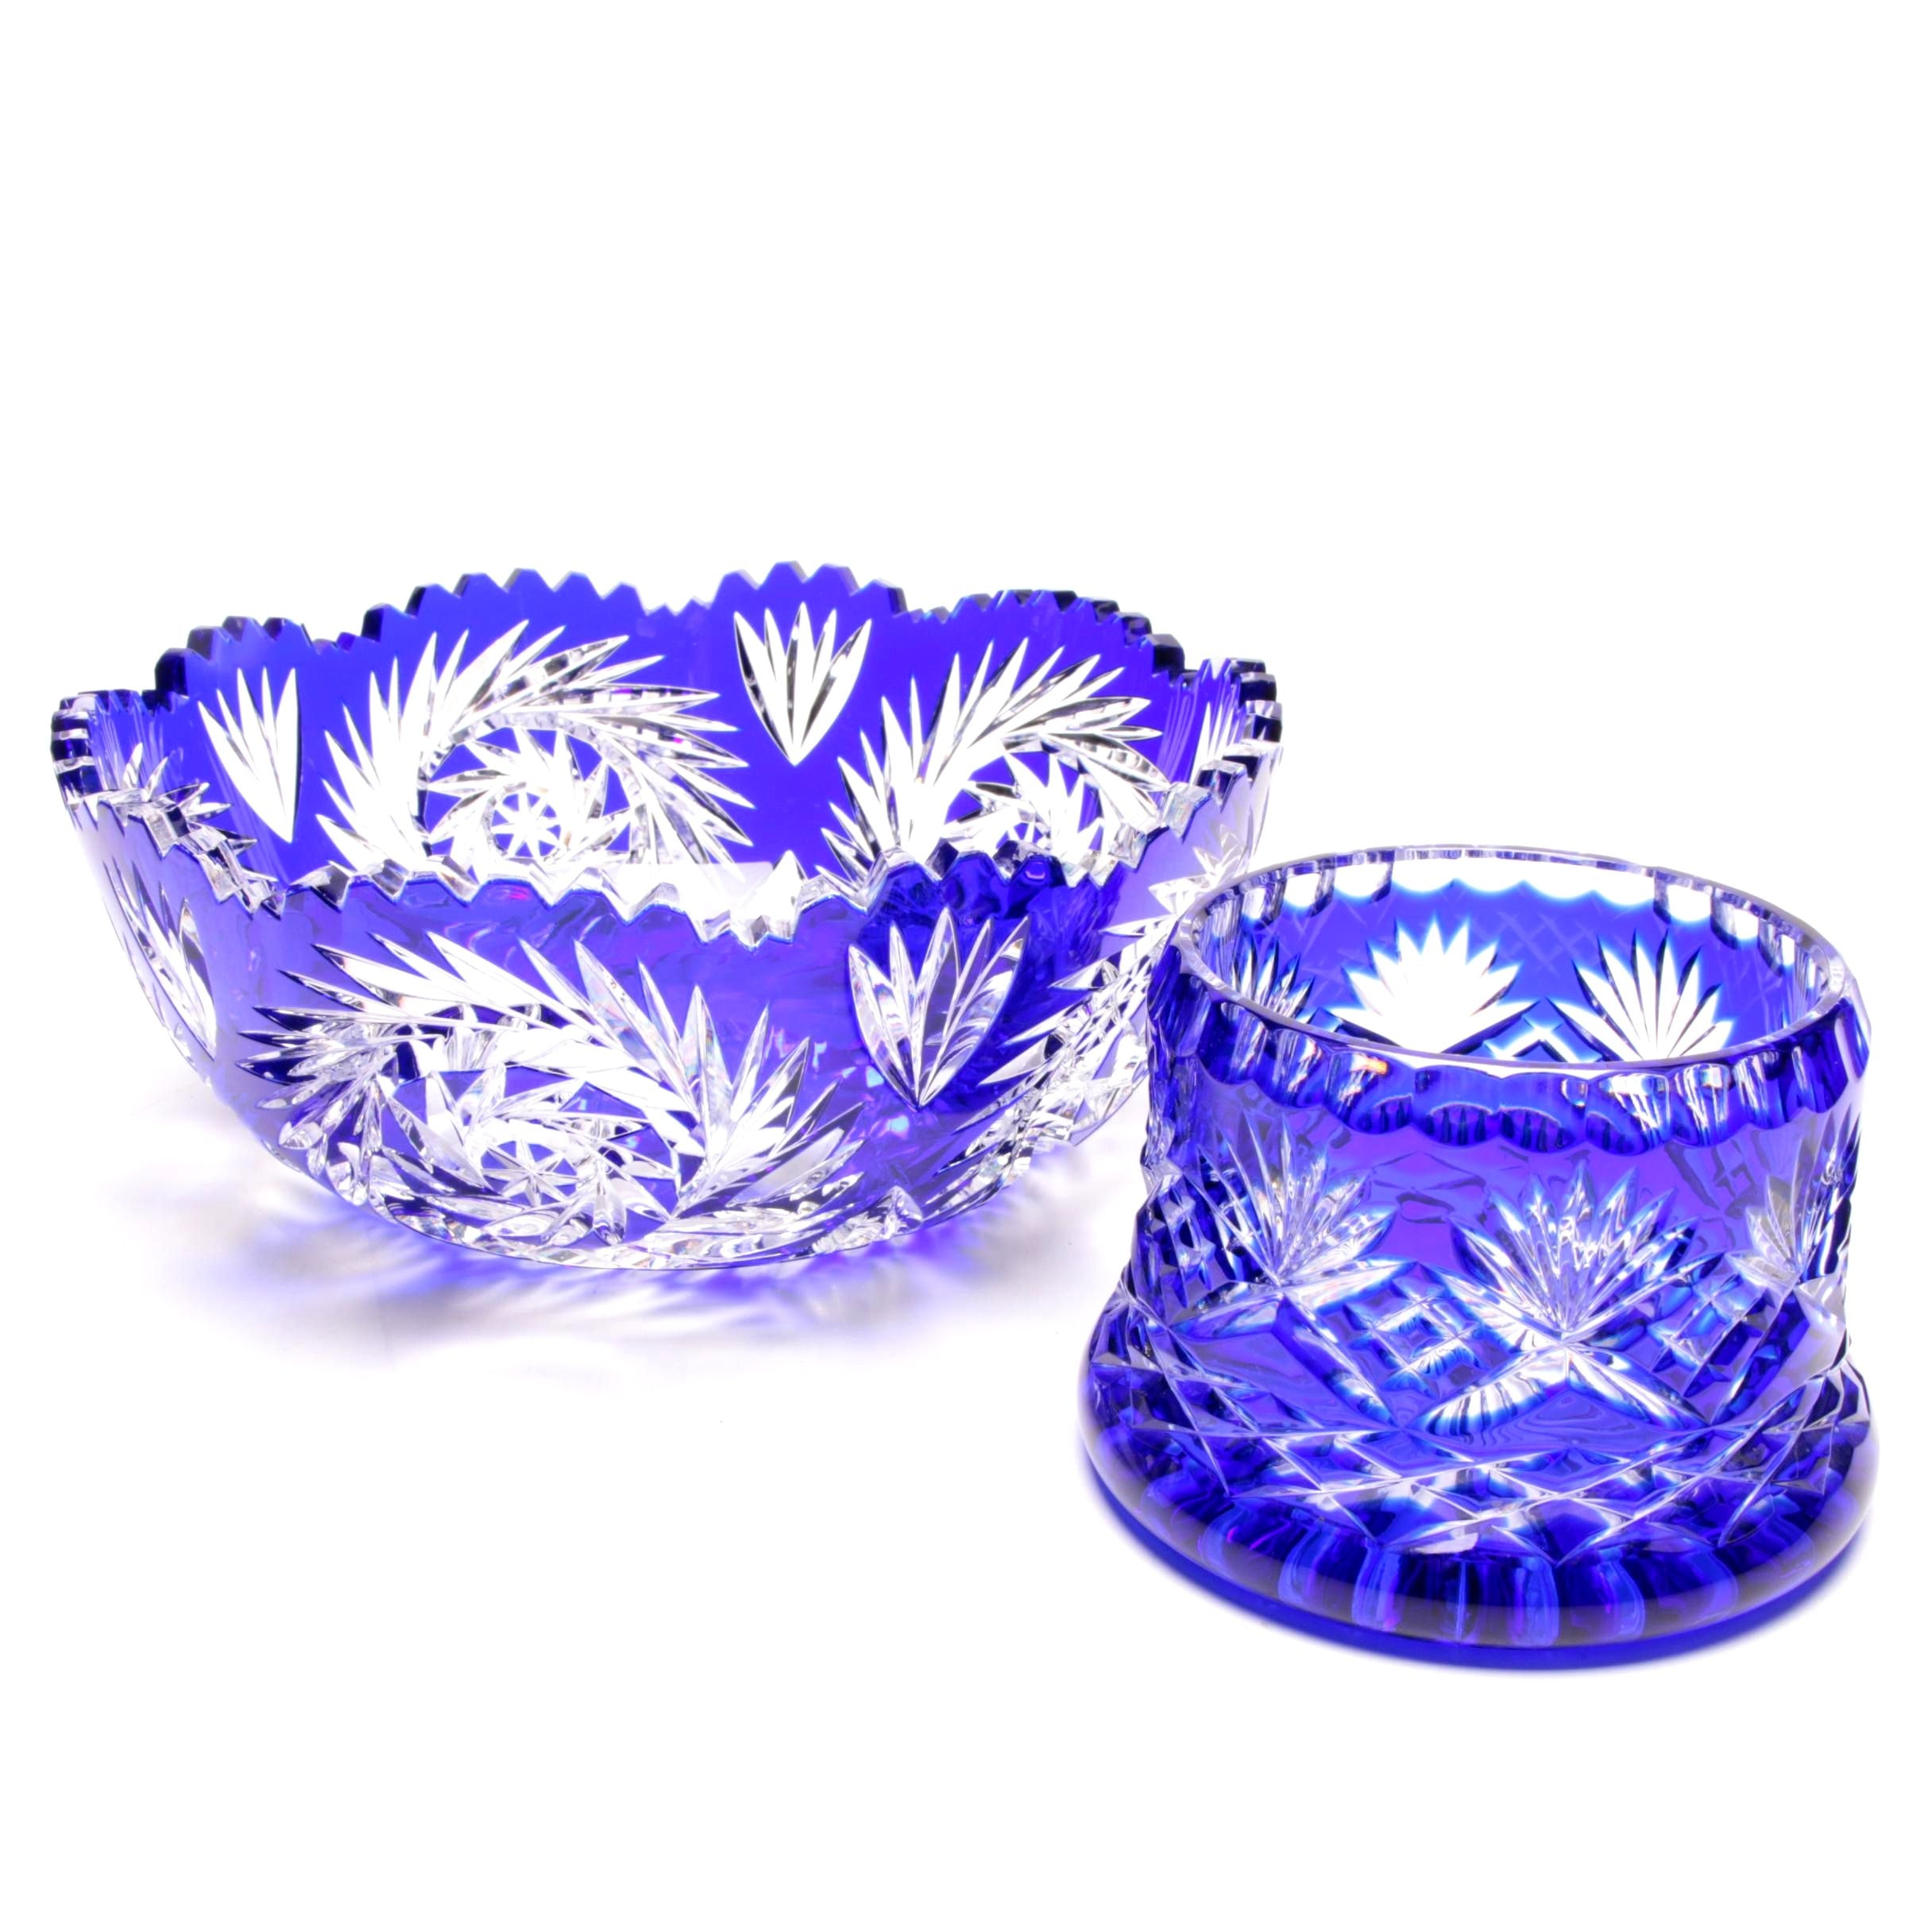 Cobalt Blue Cut to Clear Crystal Bowl and Candy Bowl